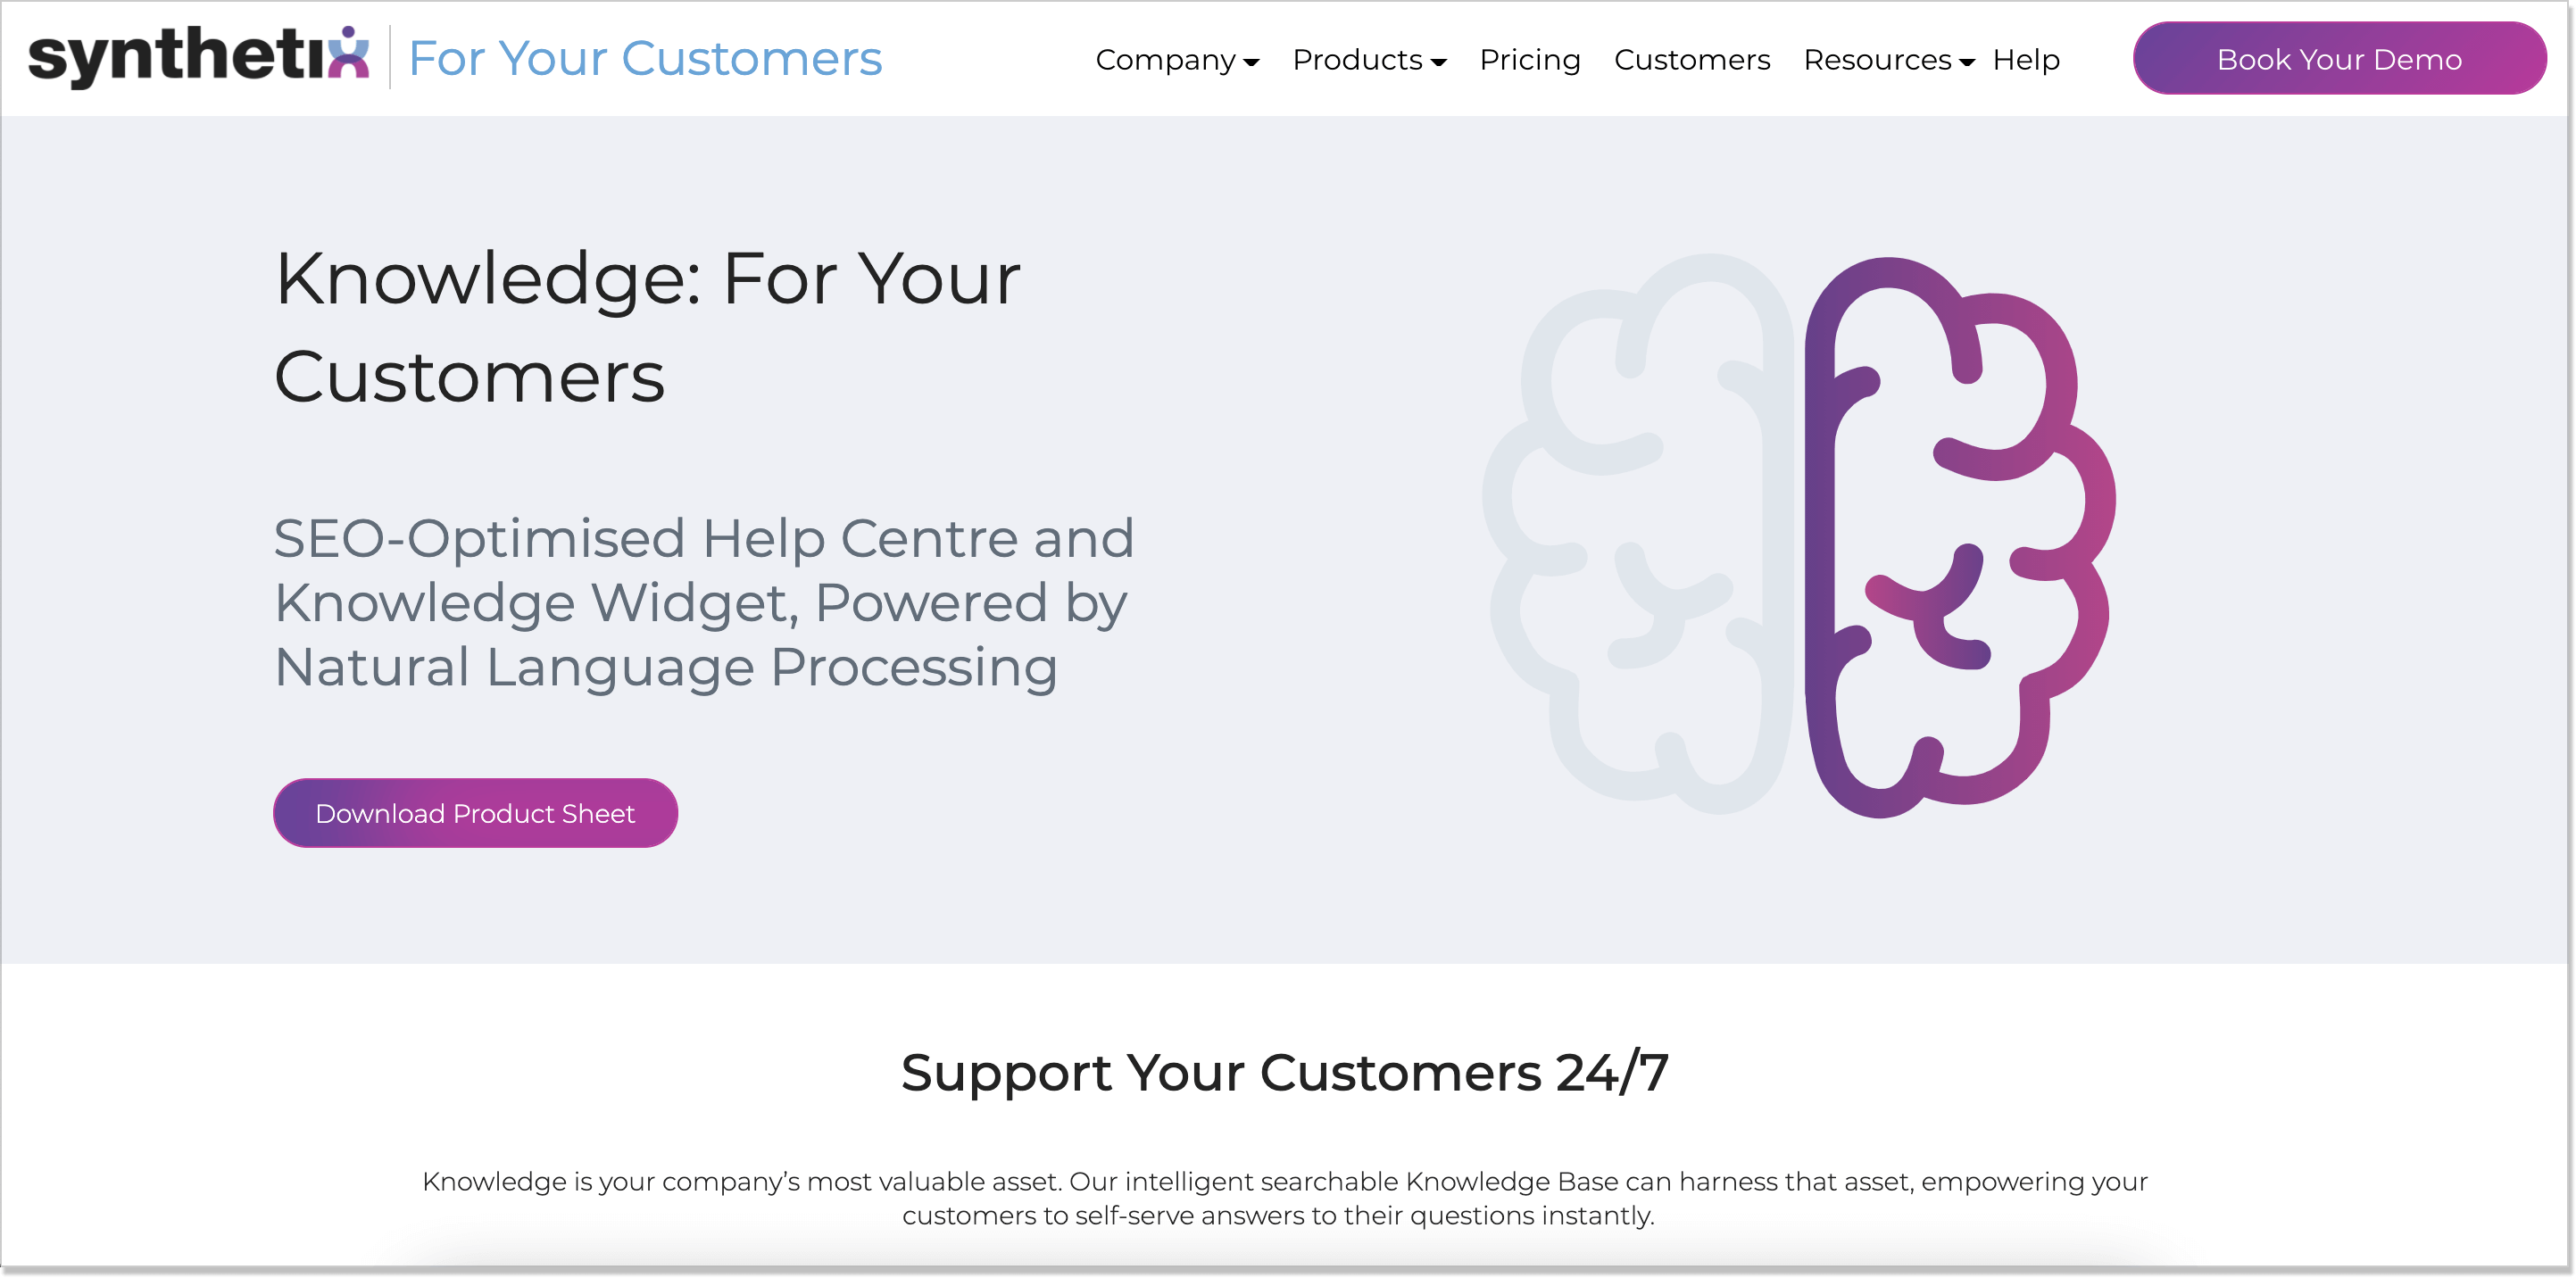 Synthetix self-service homepage